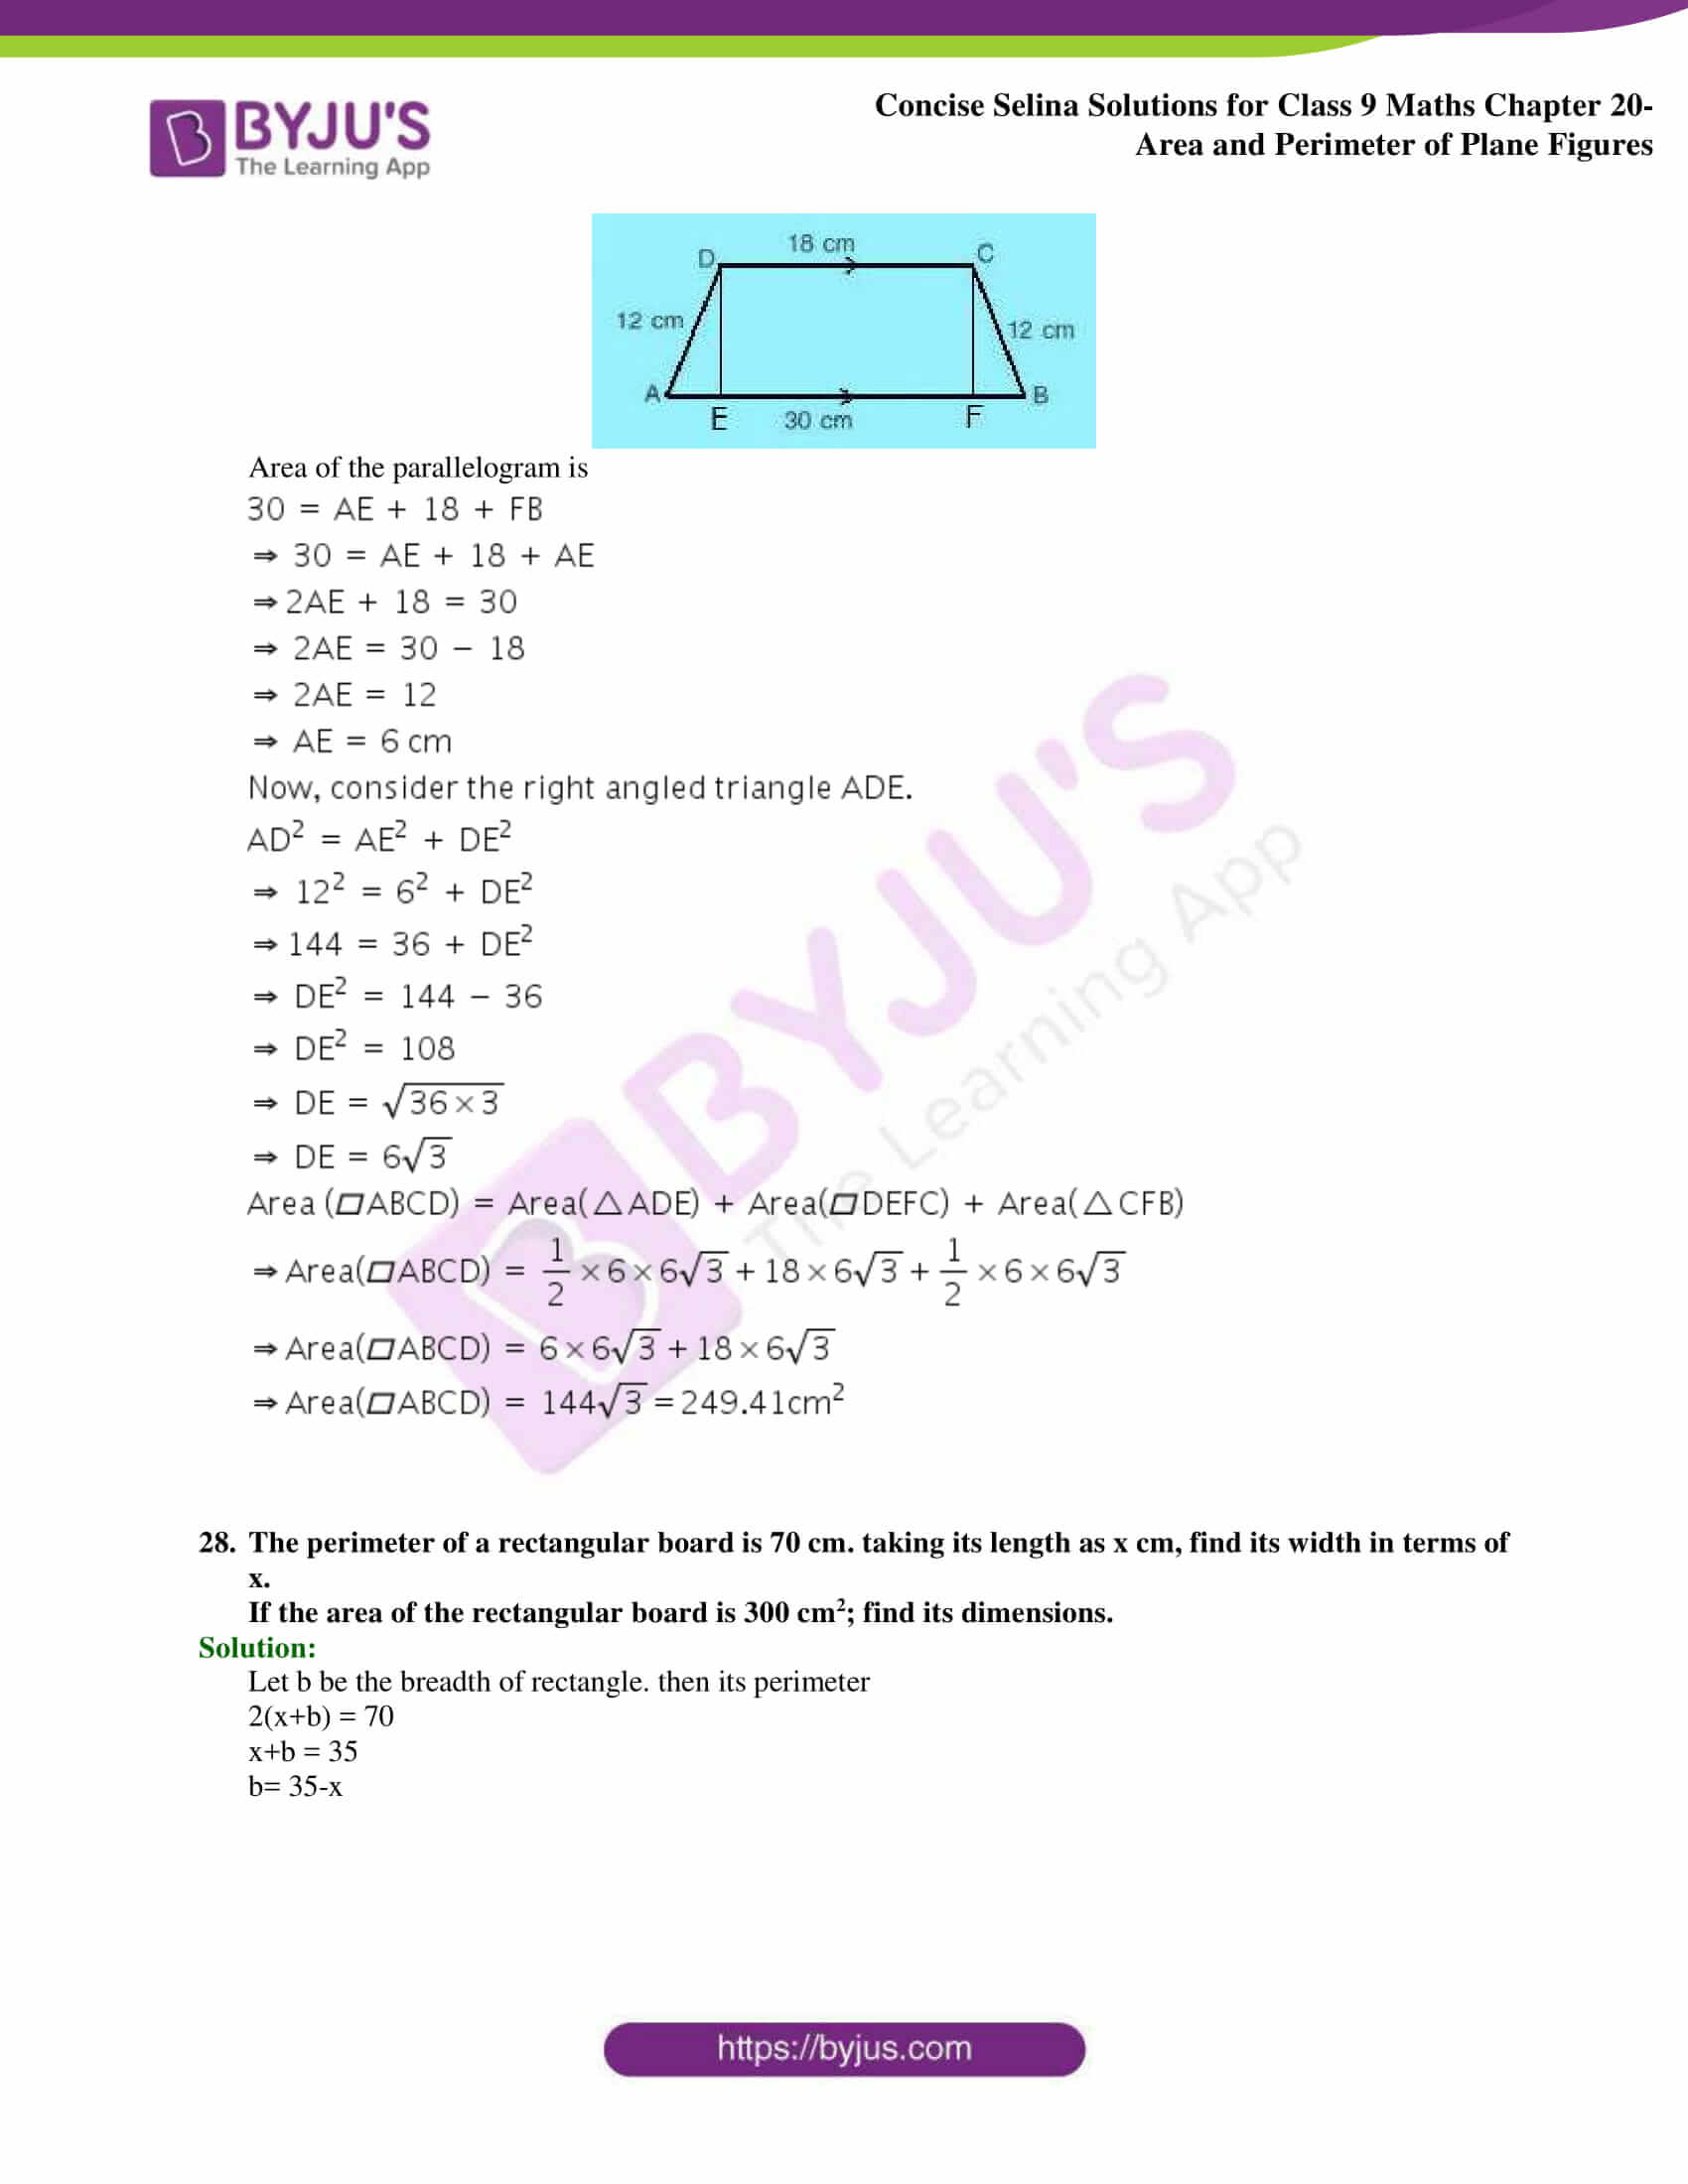 Concise Selina Solutions Class 9 Maths Chapter 20 Area and Perimeter of Plane part 28